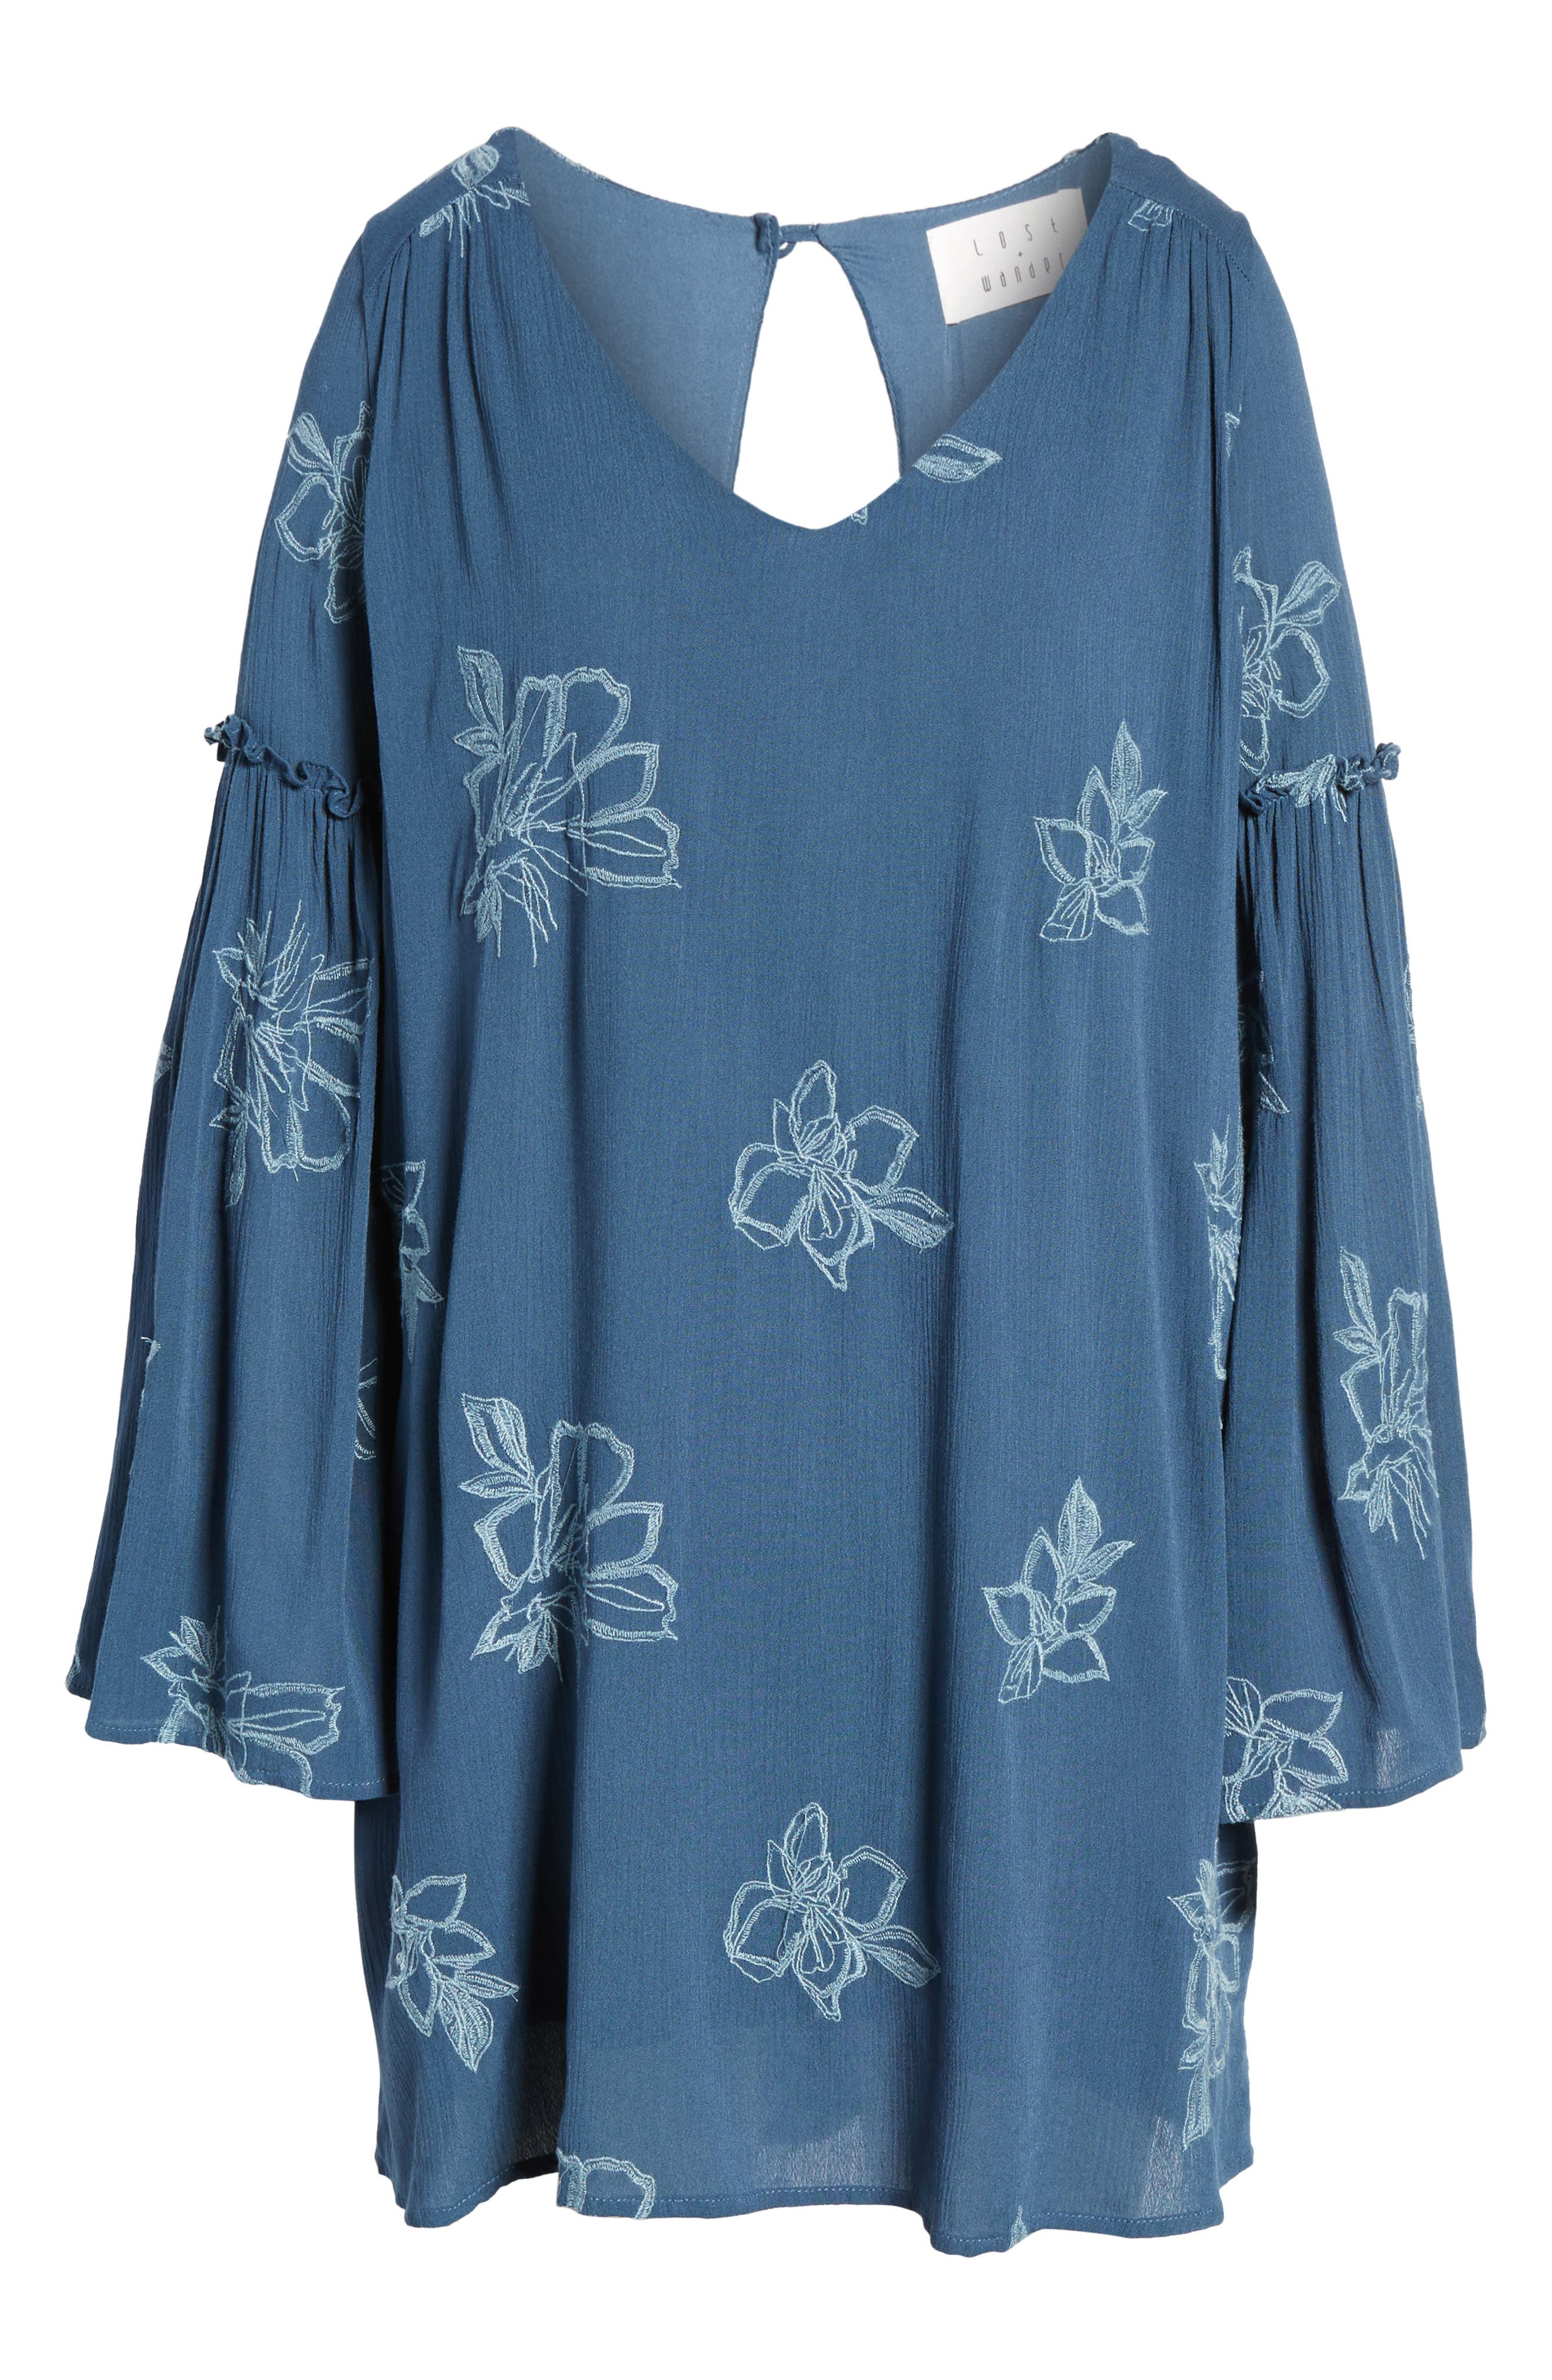 Autumn Embroidered Swing Dress,                             Alternate thumbnail 6, color,                             Blue